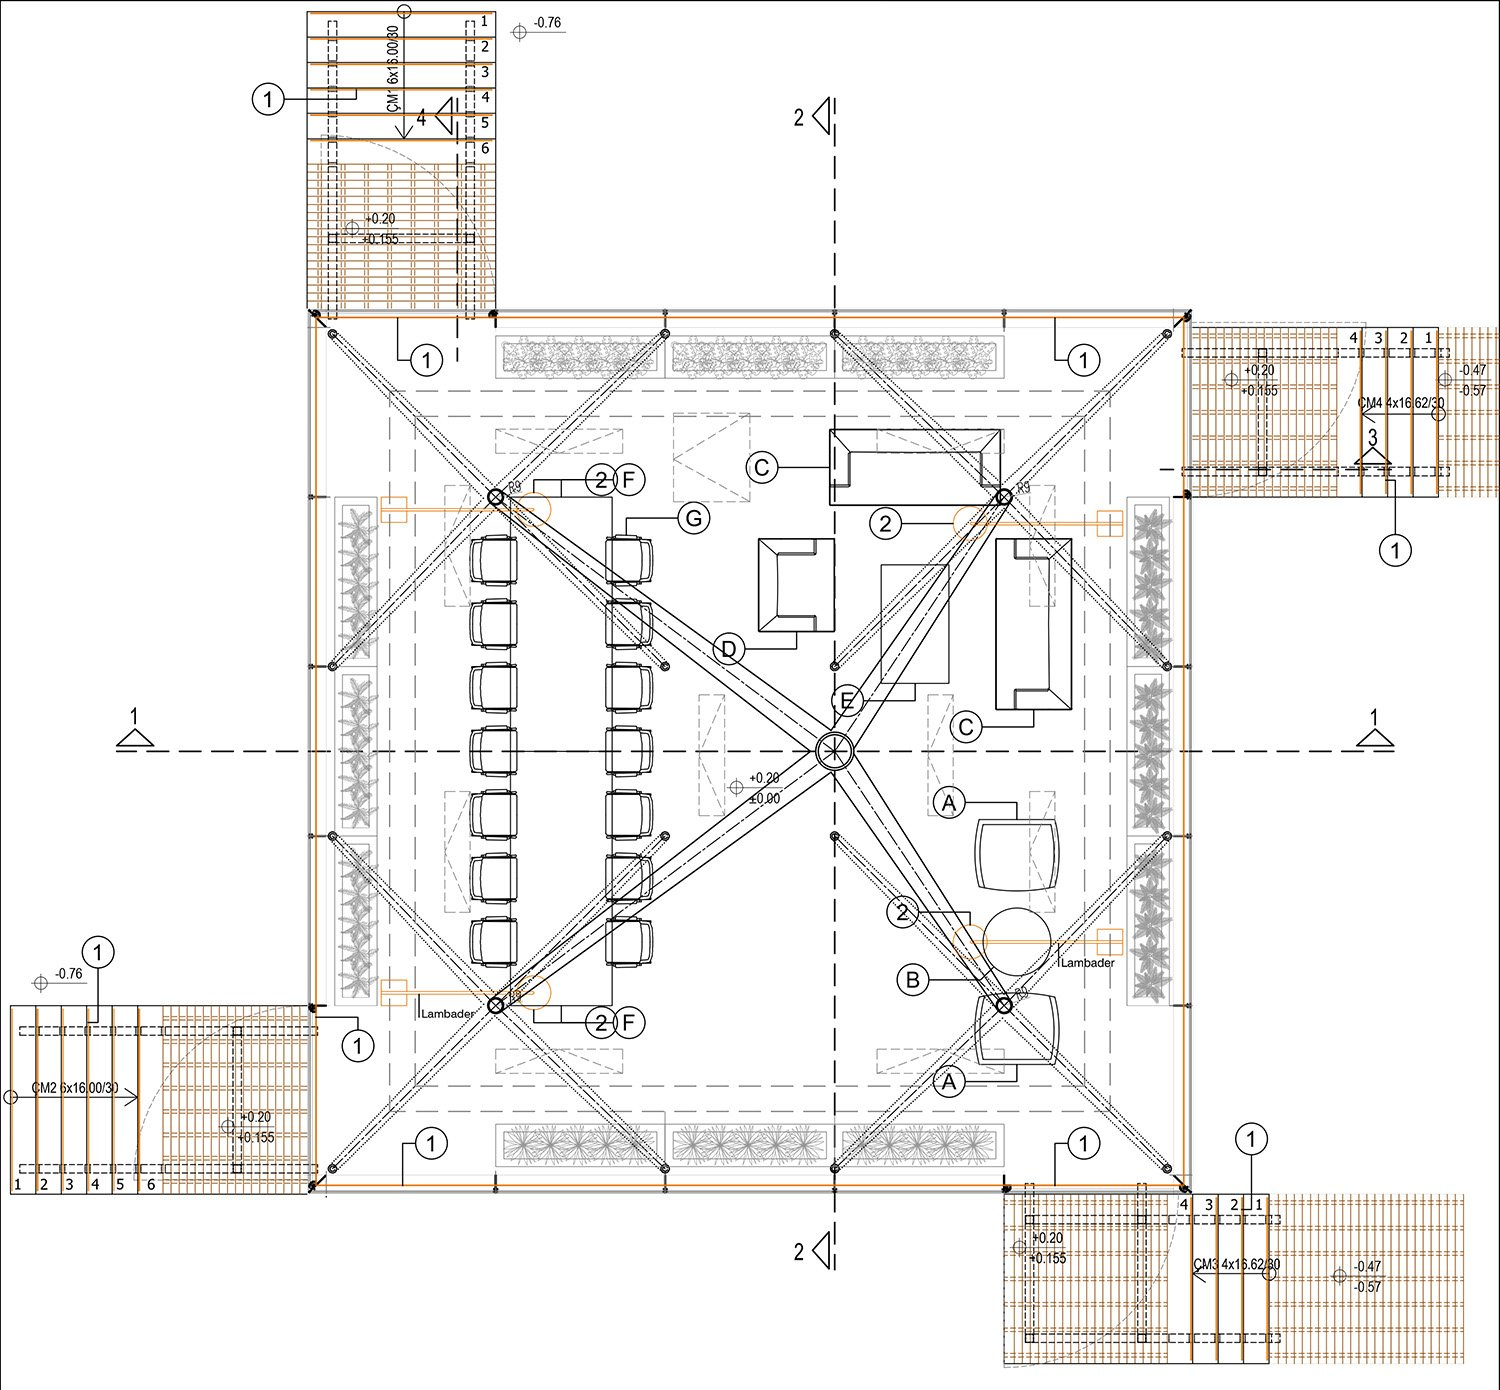 GLASS PAVILION - GROUND FLOOR PLAN YAZGAN DESIGN ARCHITECTURE}